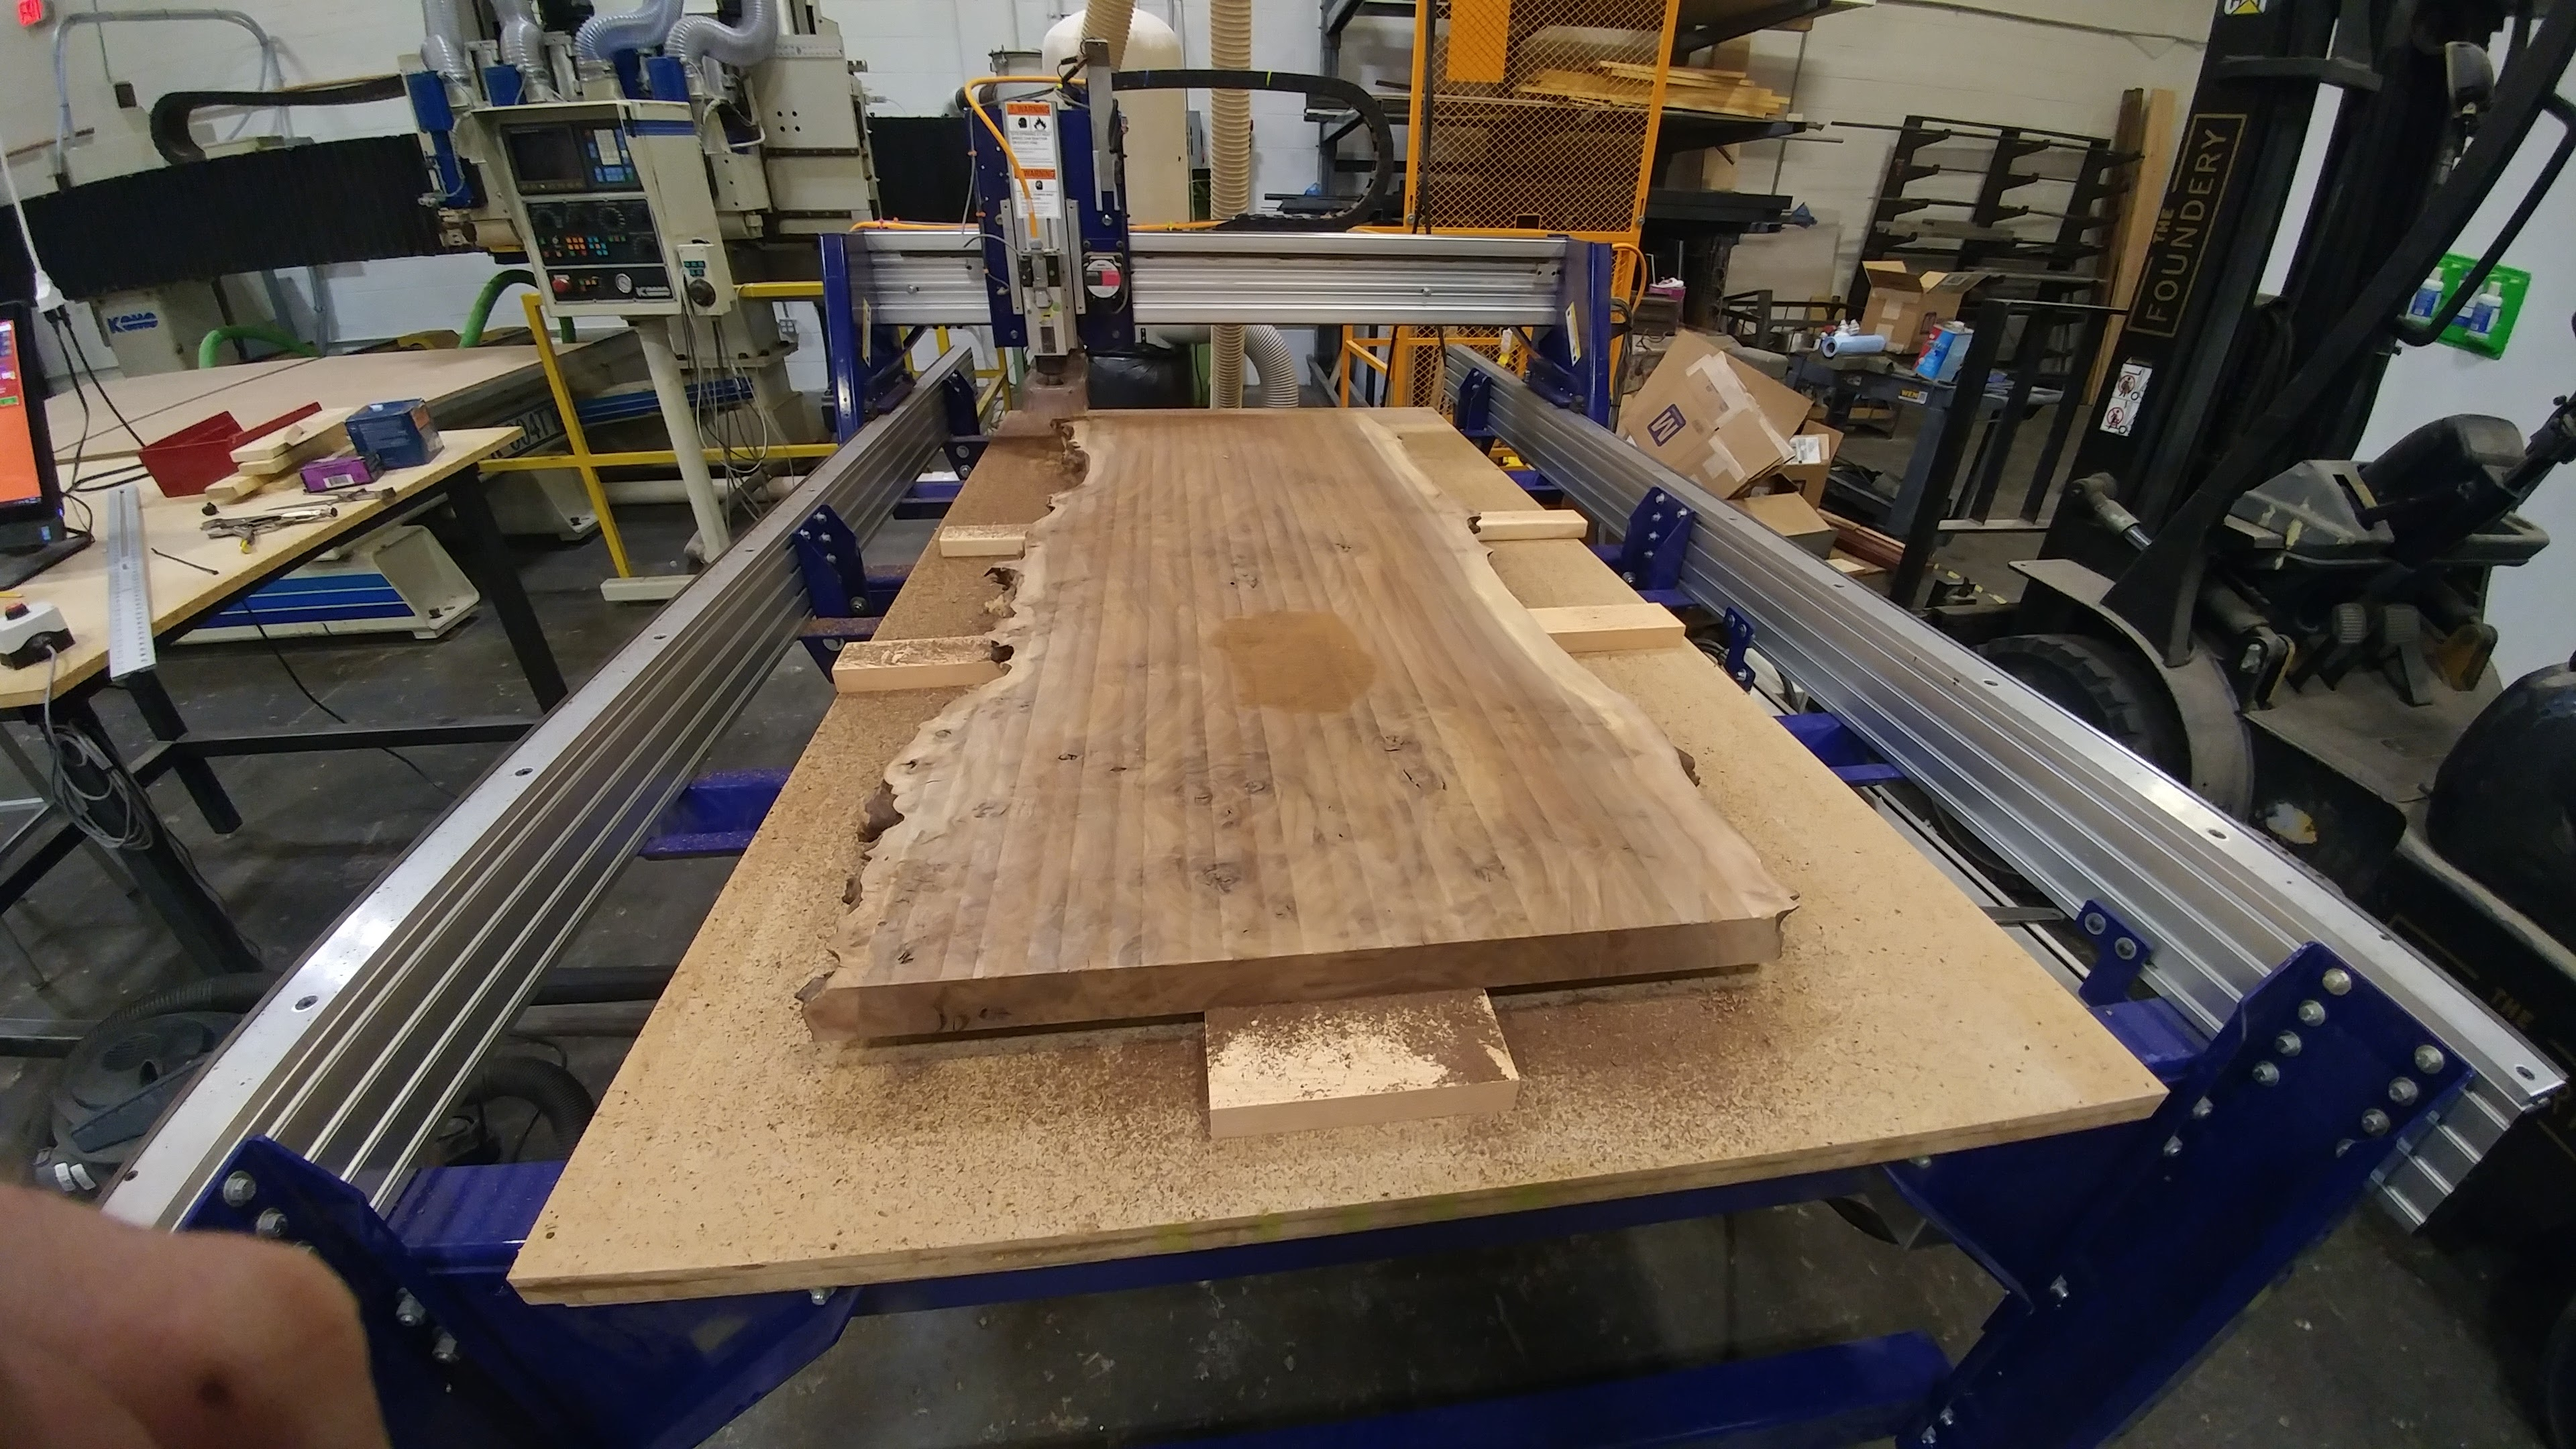 Flatten the top of the slab on the shopbot